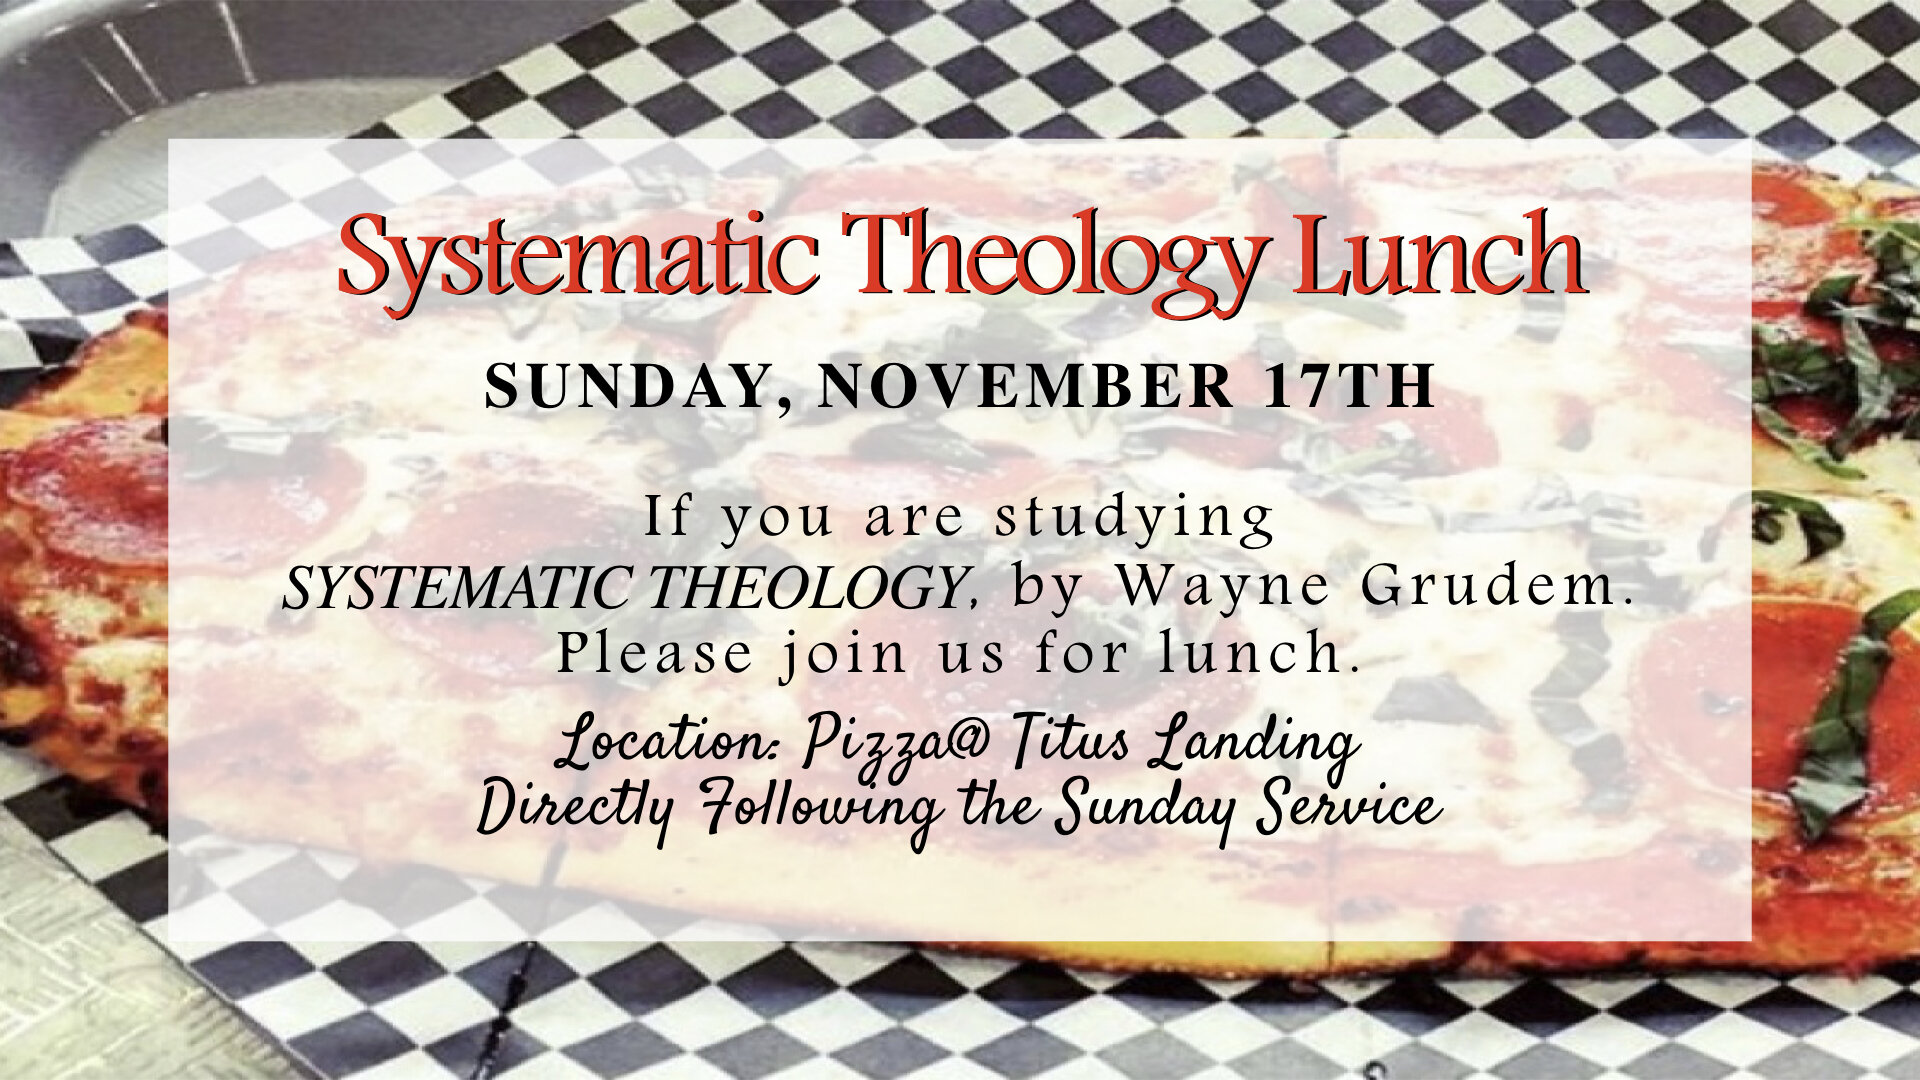 TCC Graphics - Systematic Theology Lunch.001.jpeg